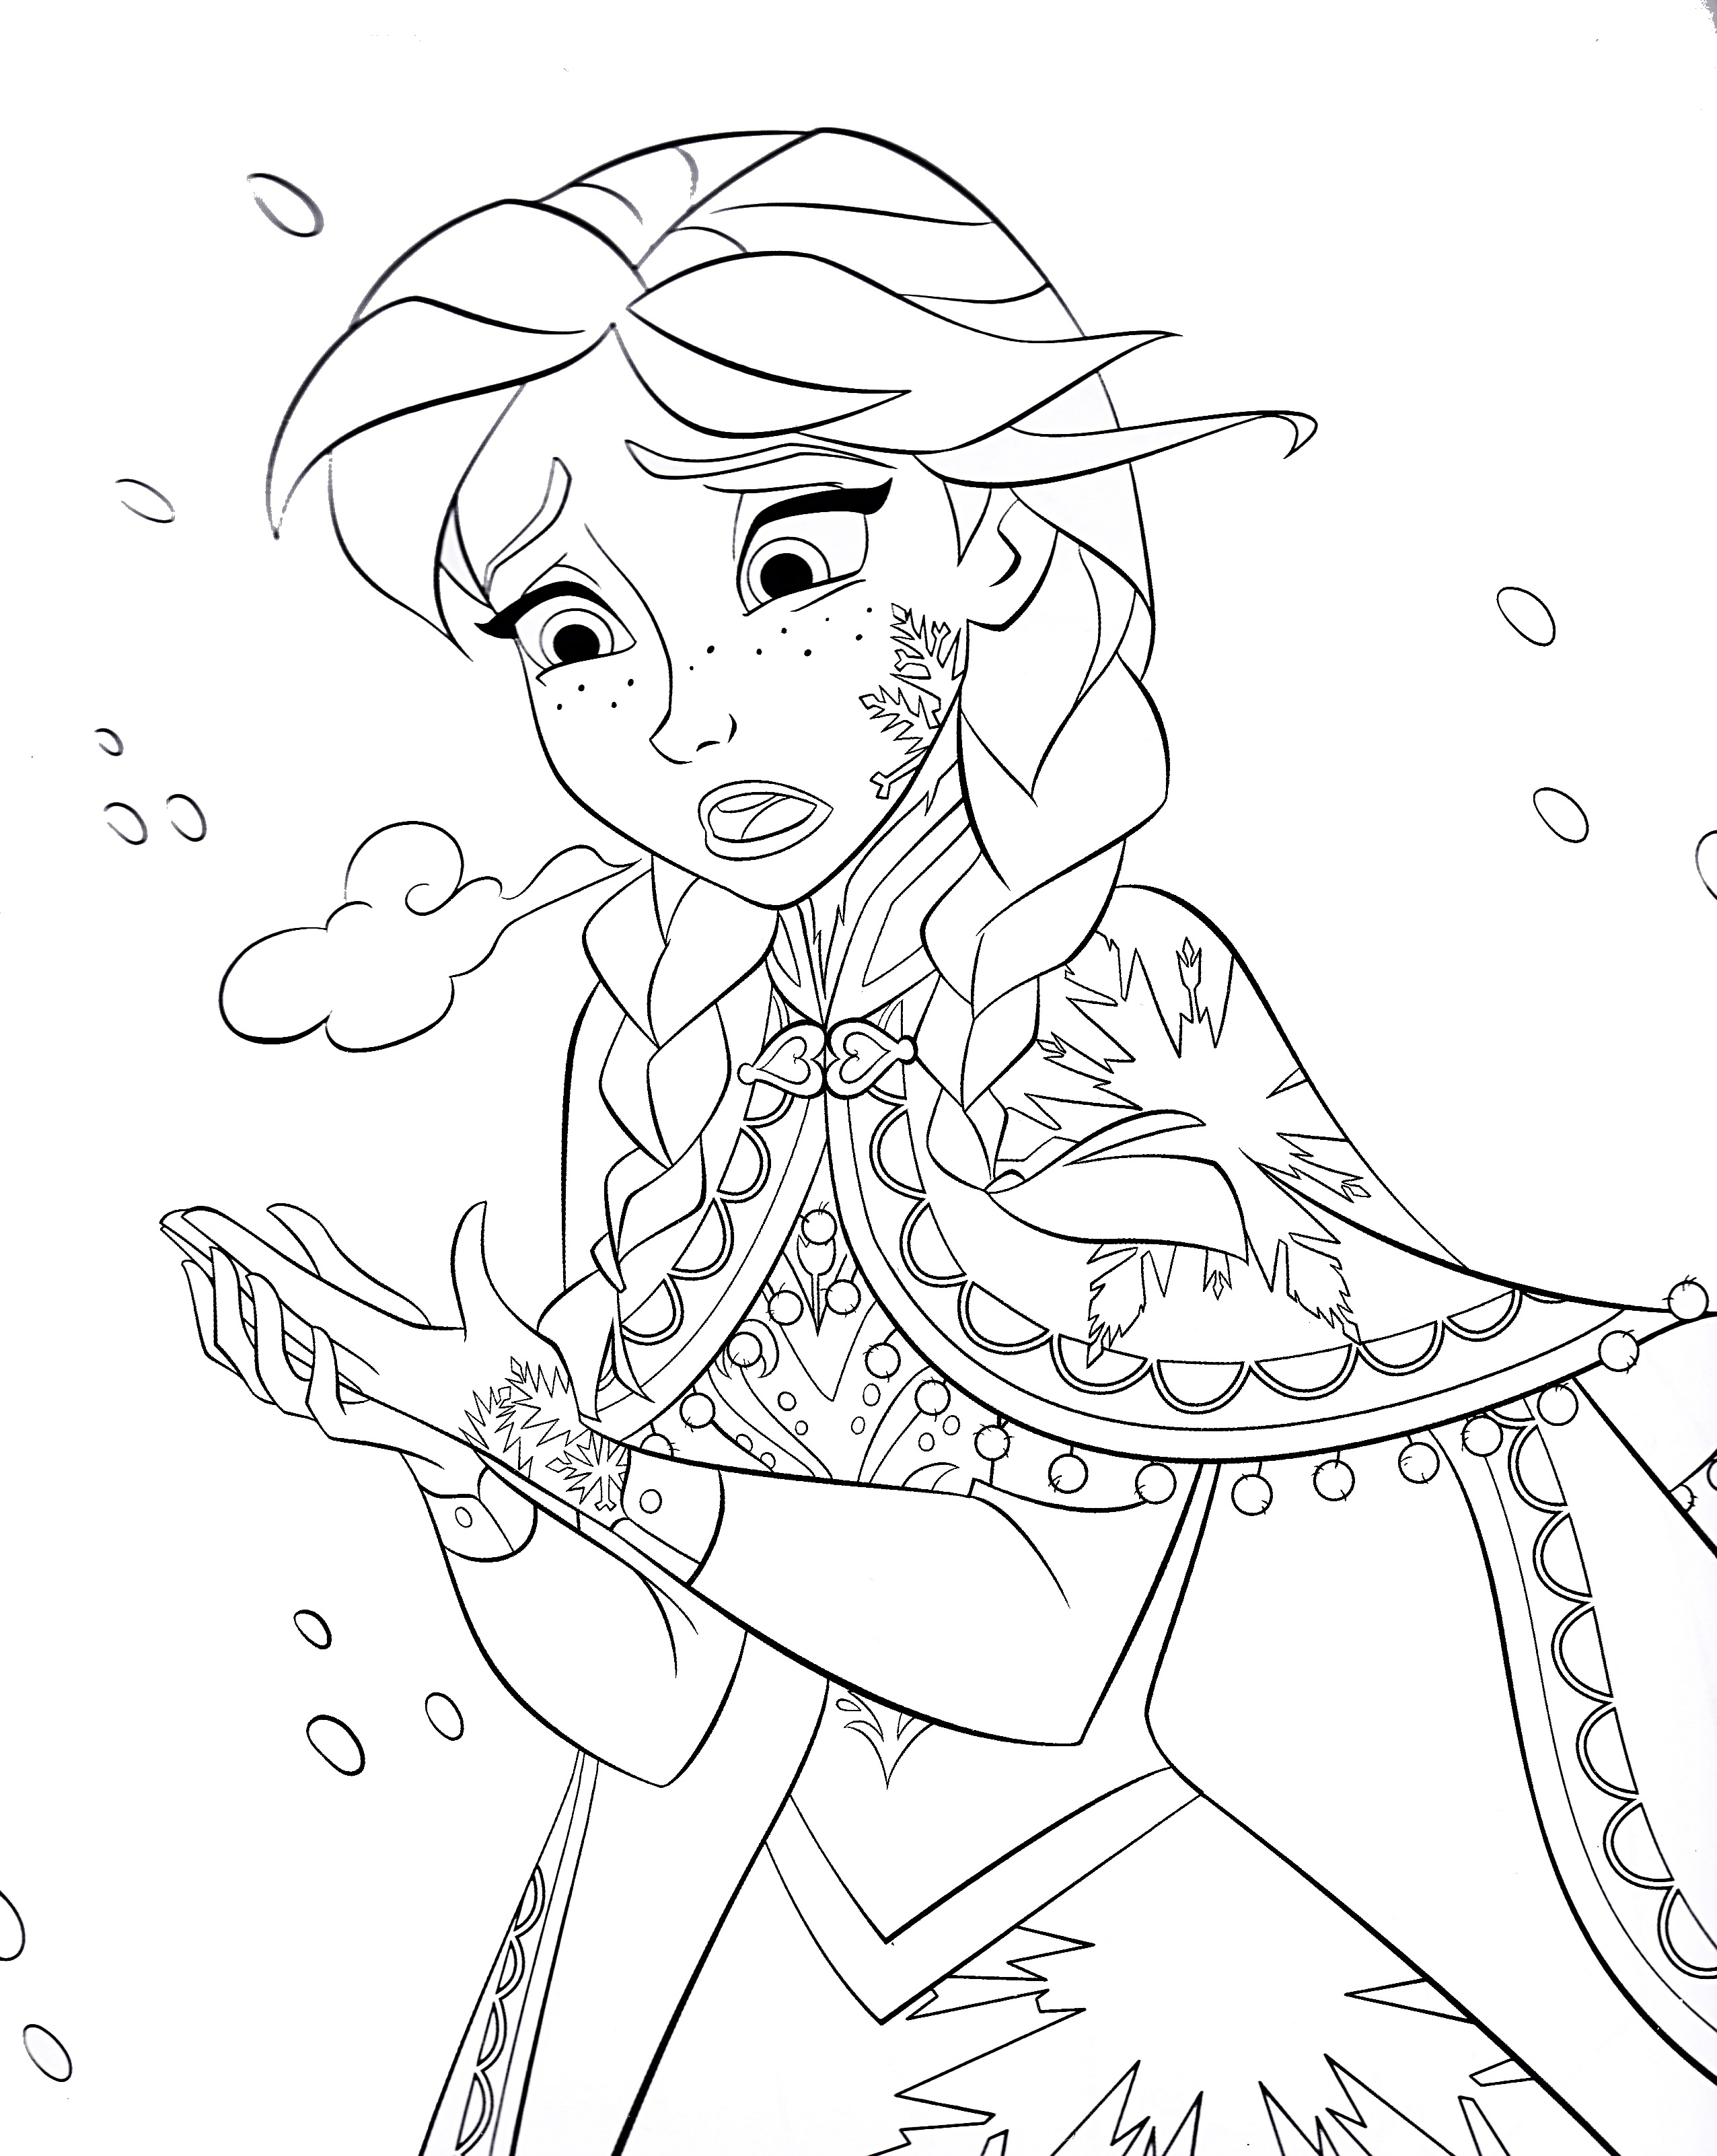 Walt Disney Coloring Pages Princess Anna Walt Disney Characters to Print Of Walt Disney Coloring Pages Marie Walt Disney Characters Download